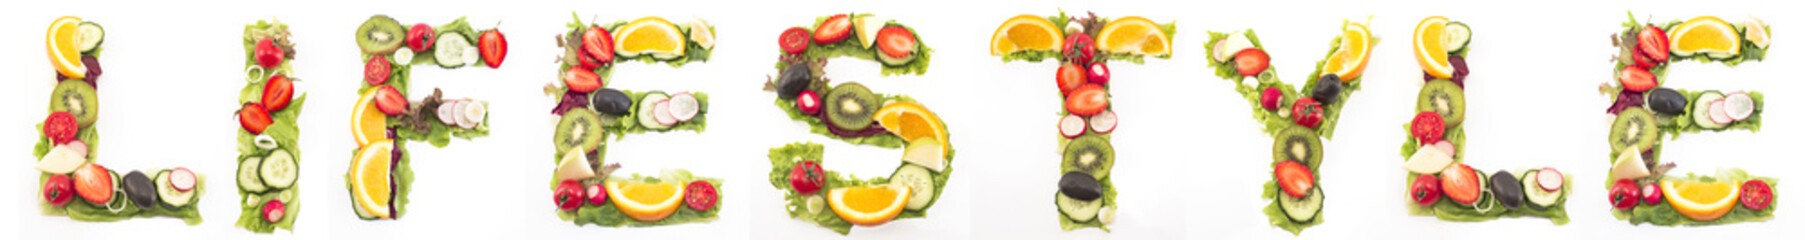 Word lifestyle made of salad and fruits